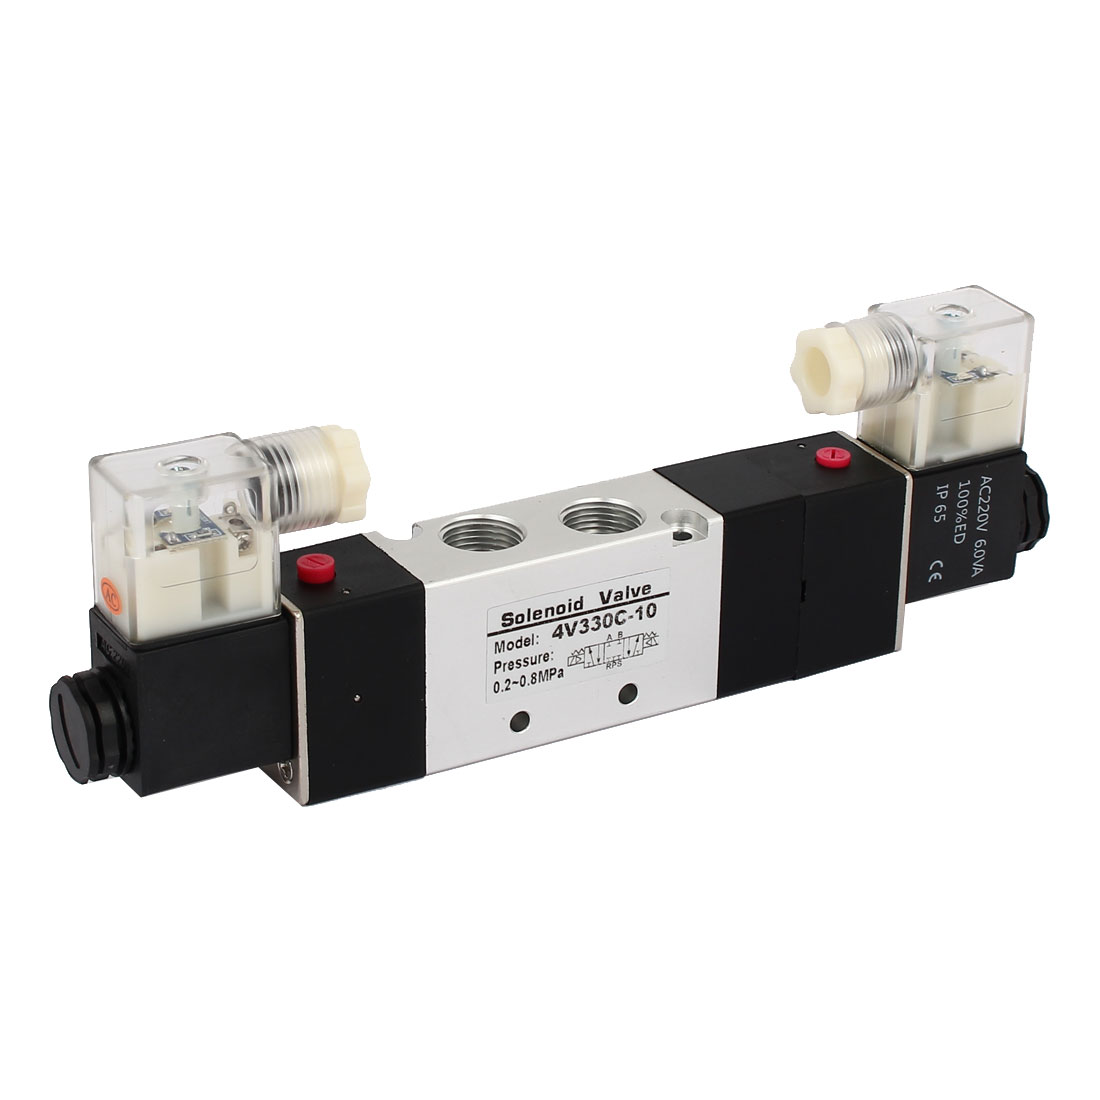 AC 220V 3 Position 5 Way Double Head Pneumatic Solenoid Air Valve 4V330C-10